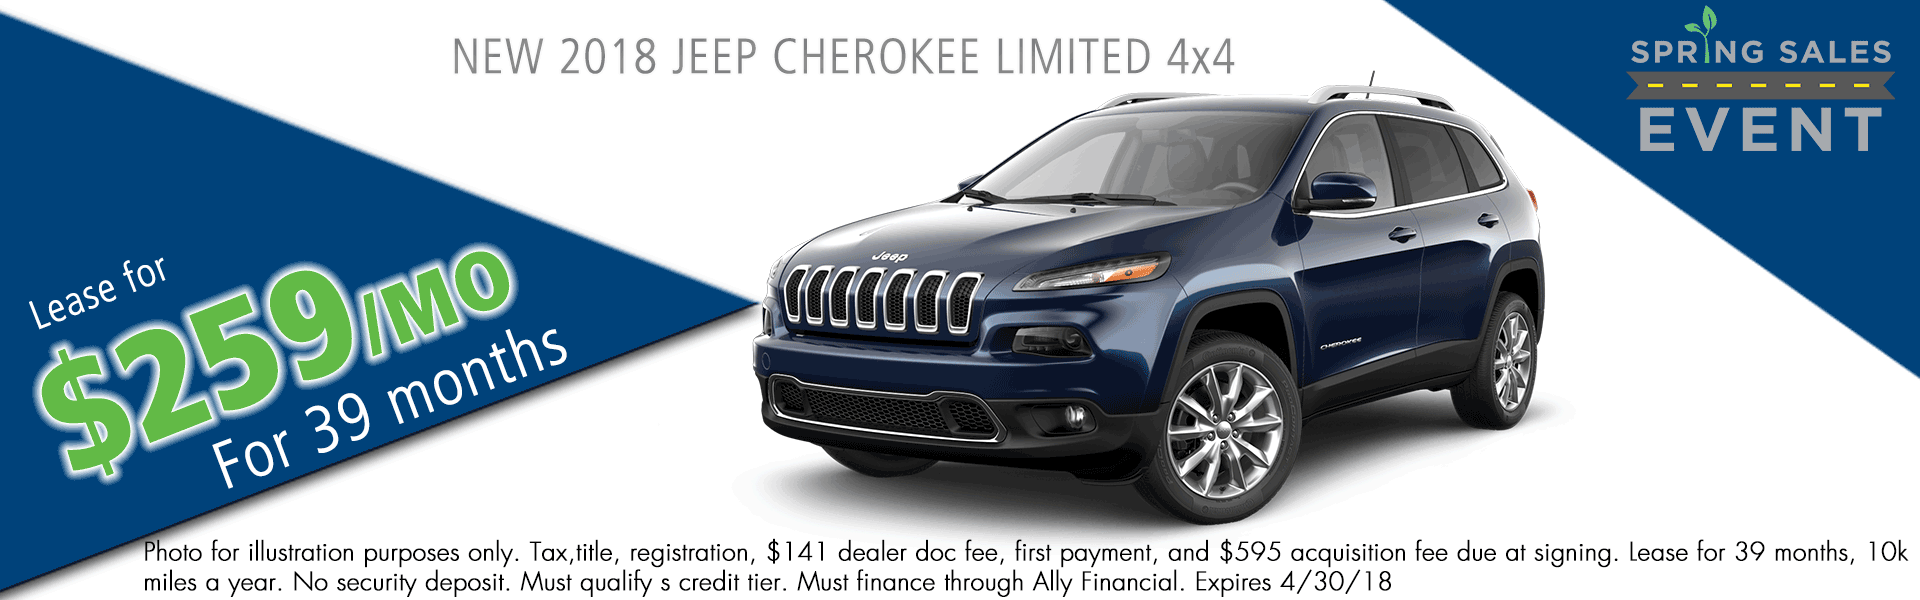 NEW 2018 JEEP CHEROKEE LIMITED 4X4 carright auto 5408 university blvd moon, pa 15108 chrysler dodge jeep ram